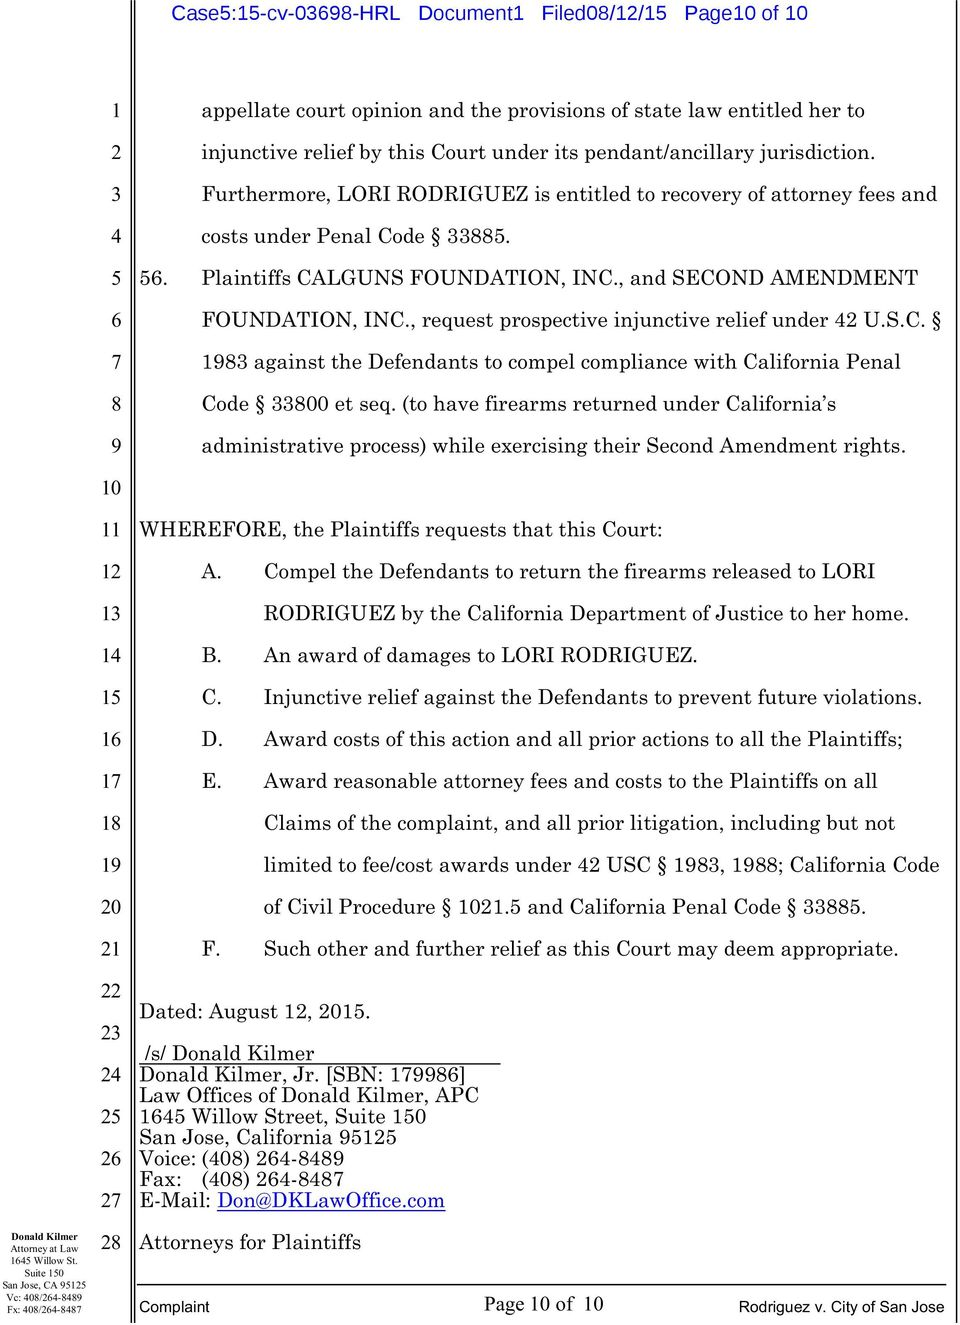 , request prospective injunctive relief under U.S.C. against the Defendants to compel compliance with California Penal Code 00 et seq.